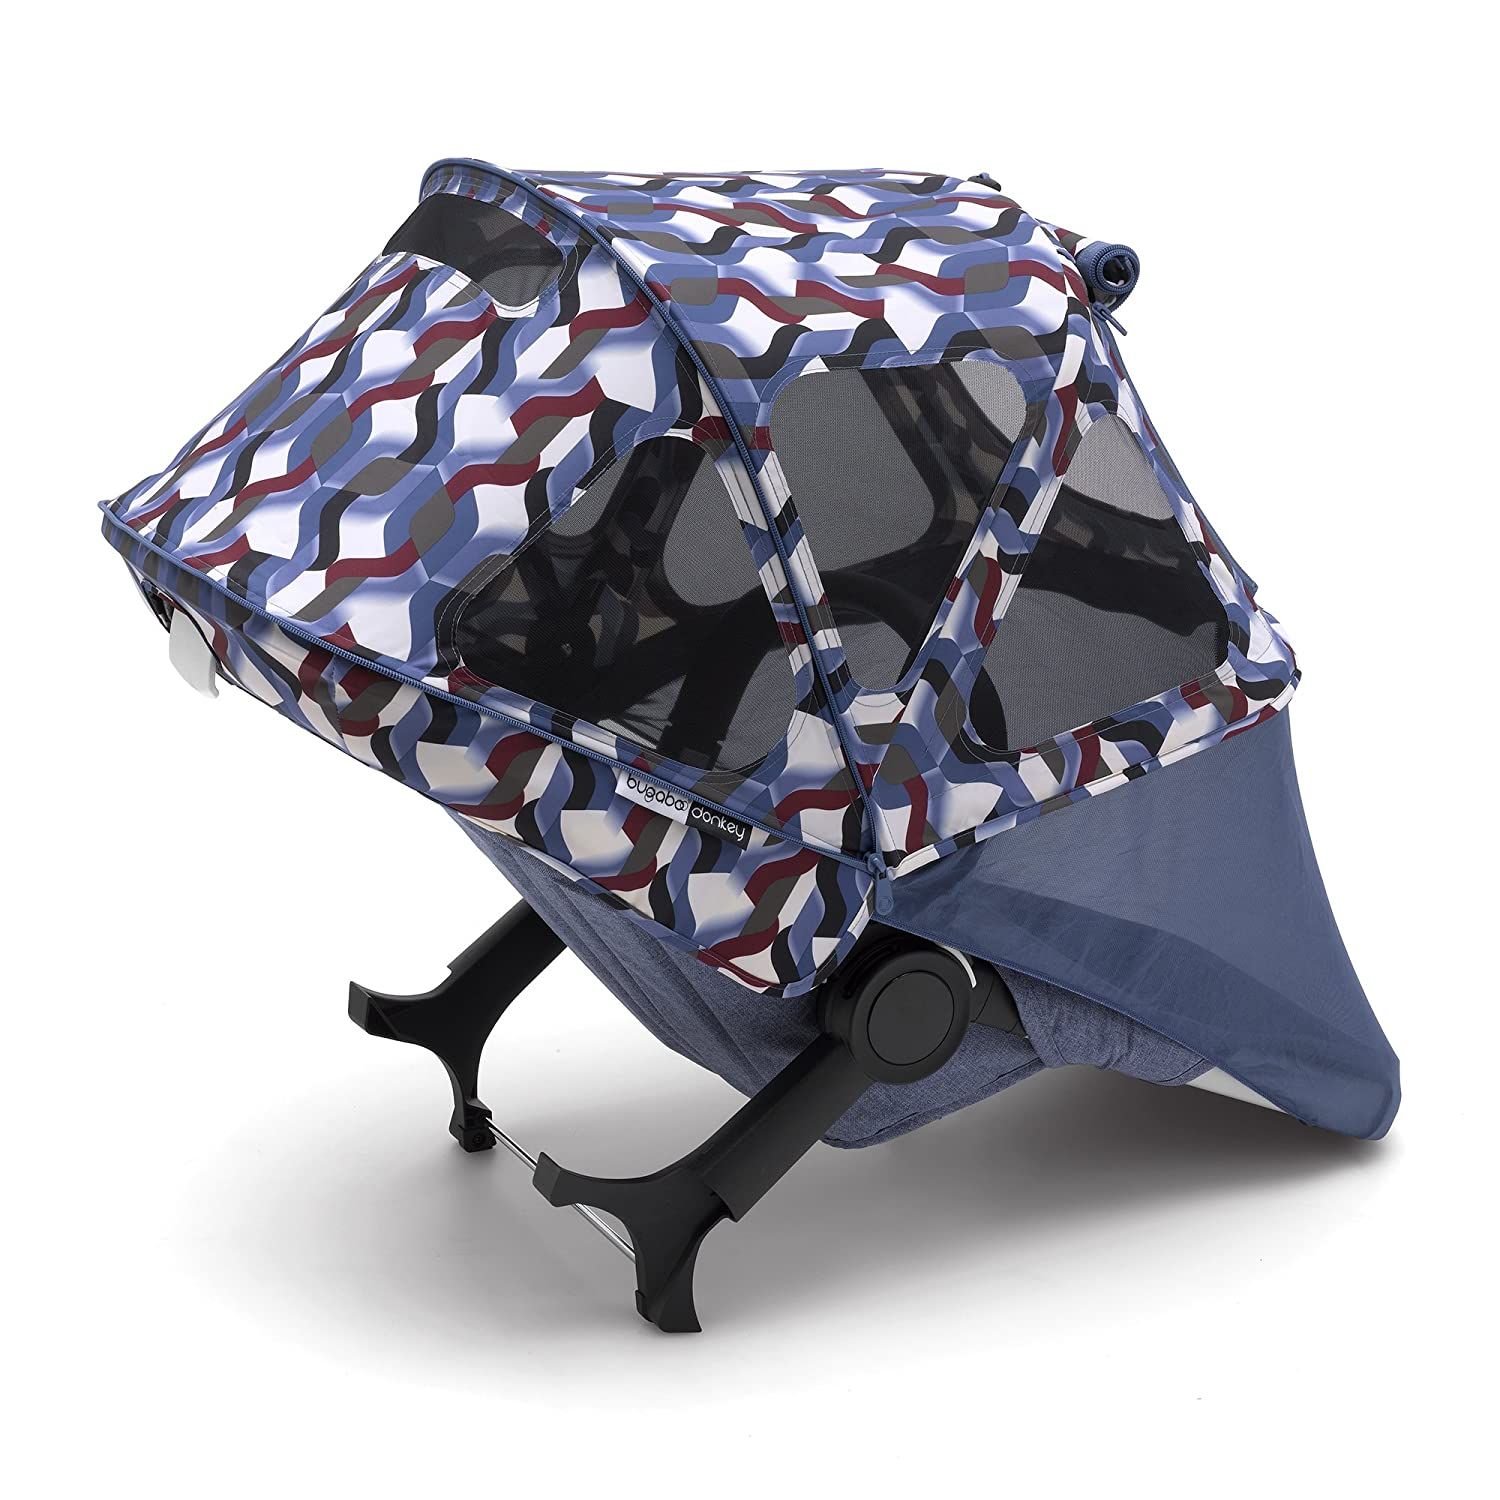 Stellar Extendable Sun Canopy with Mesh Ventilation Panels Made with Reflective Materials for Nighttime Strolling Bugaboo Donkey2 Breezy Sun Canopy